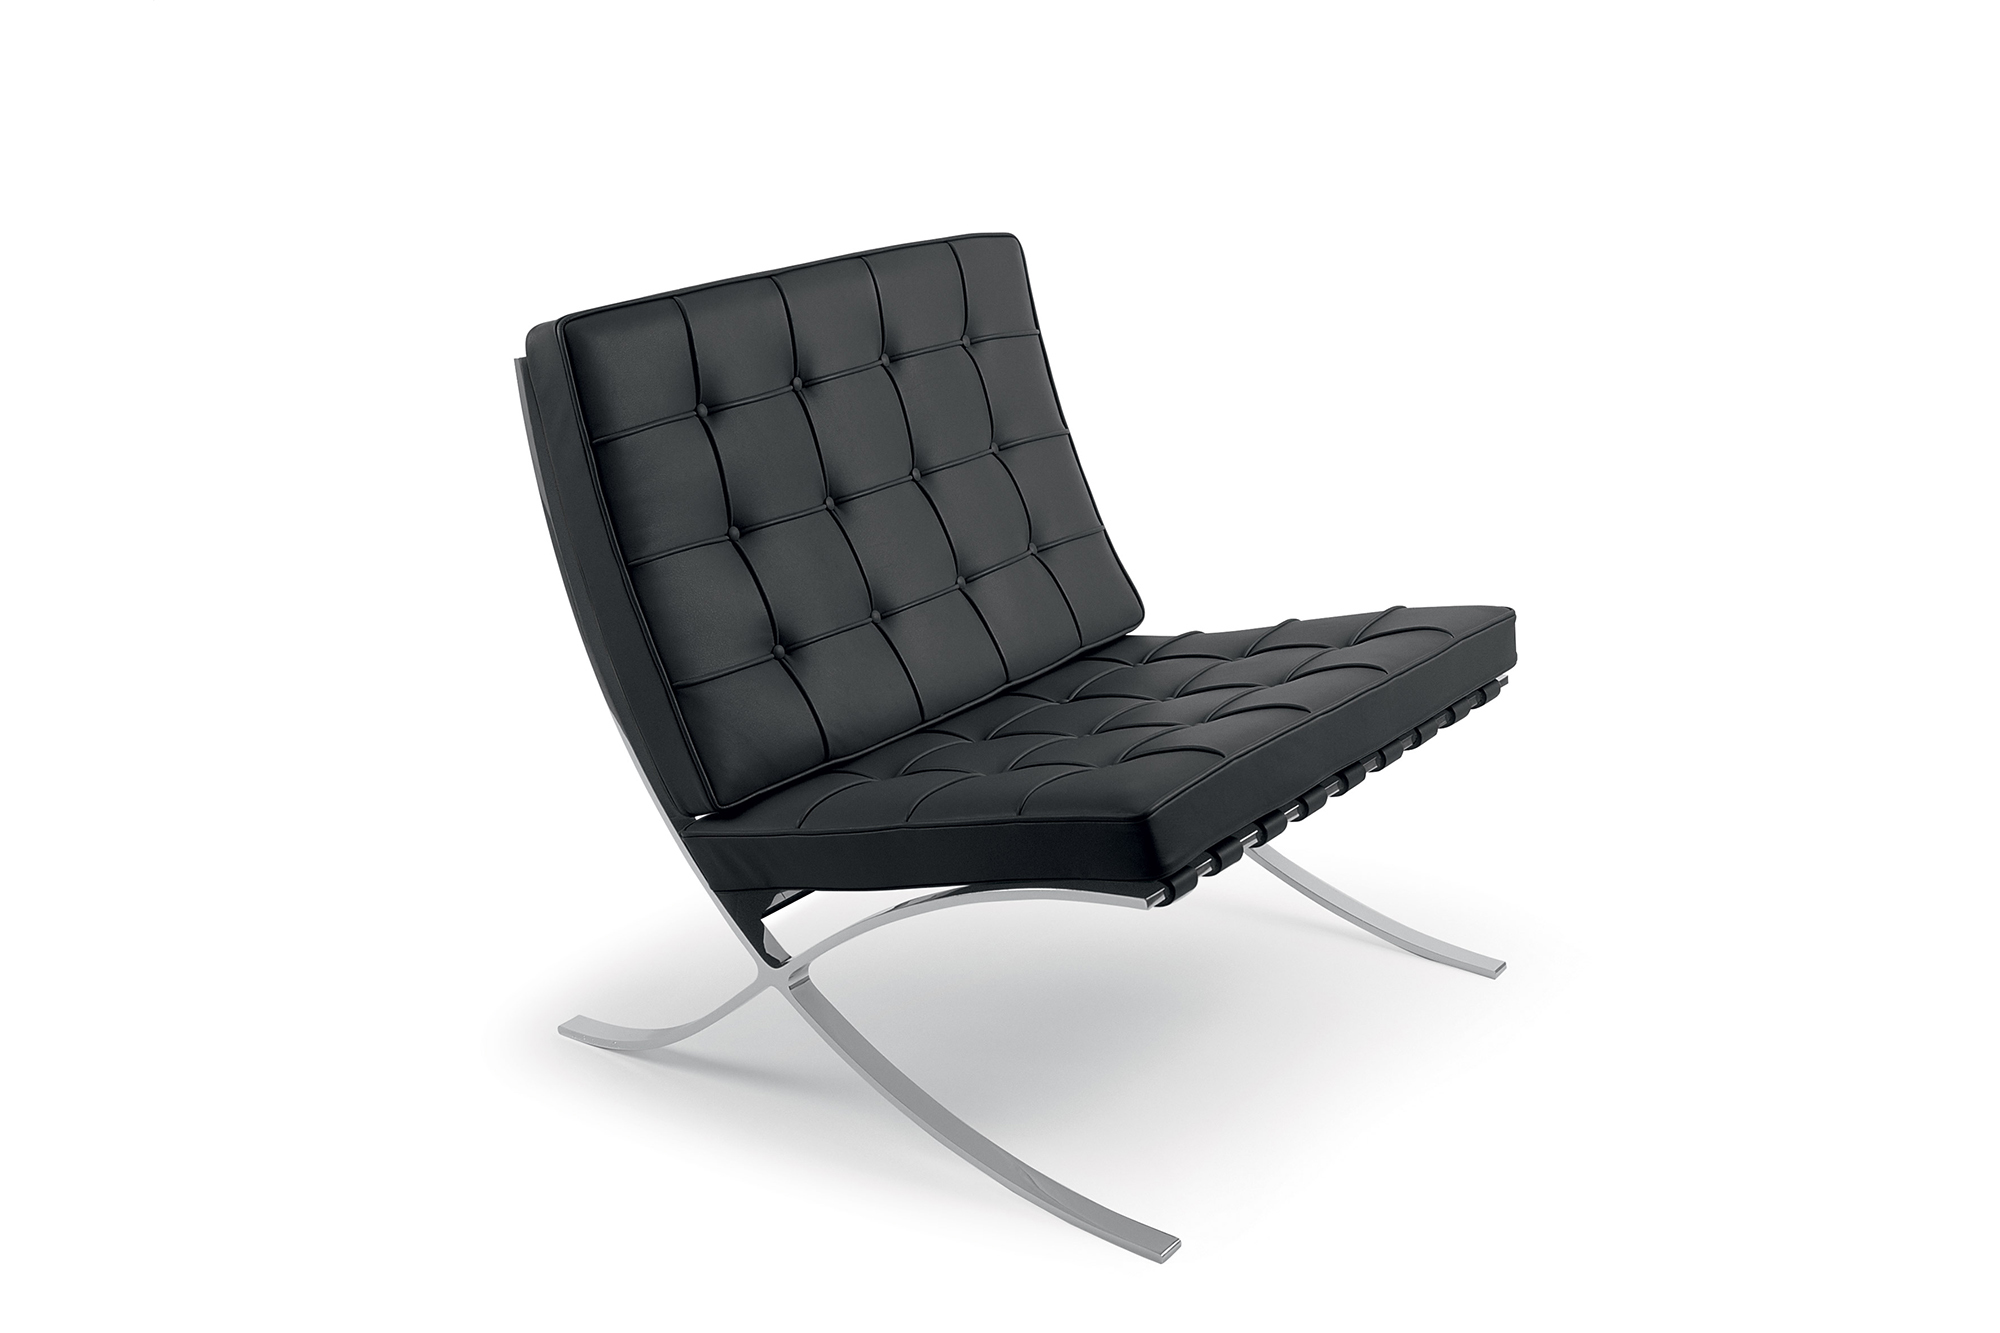 The Barcelona Chair